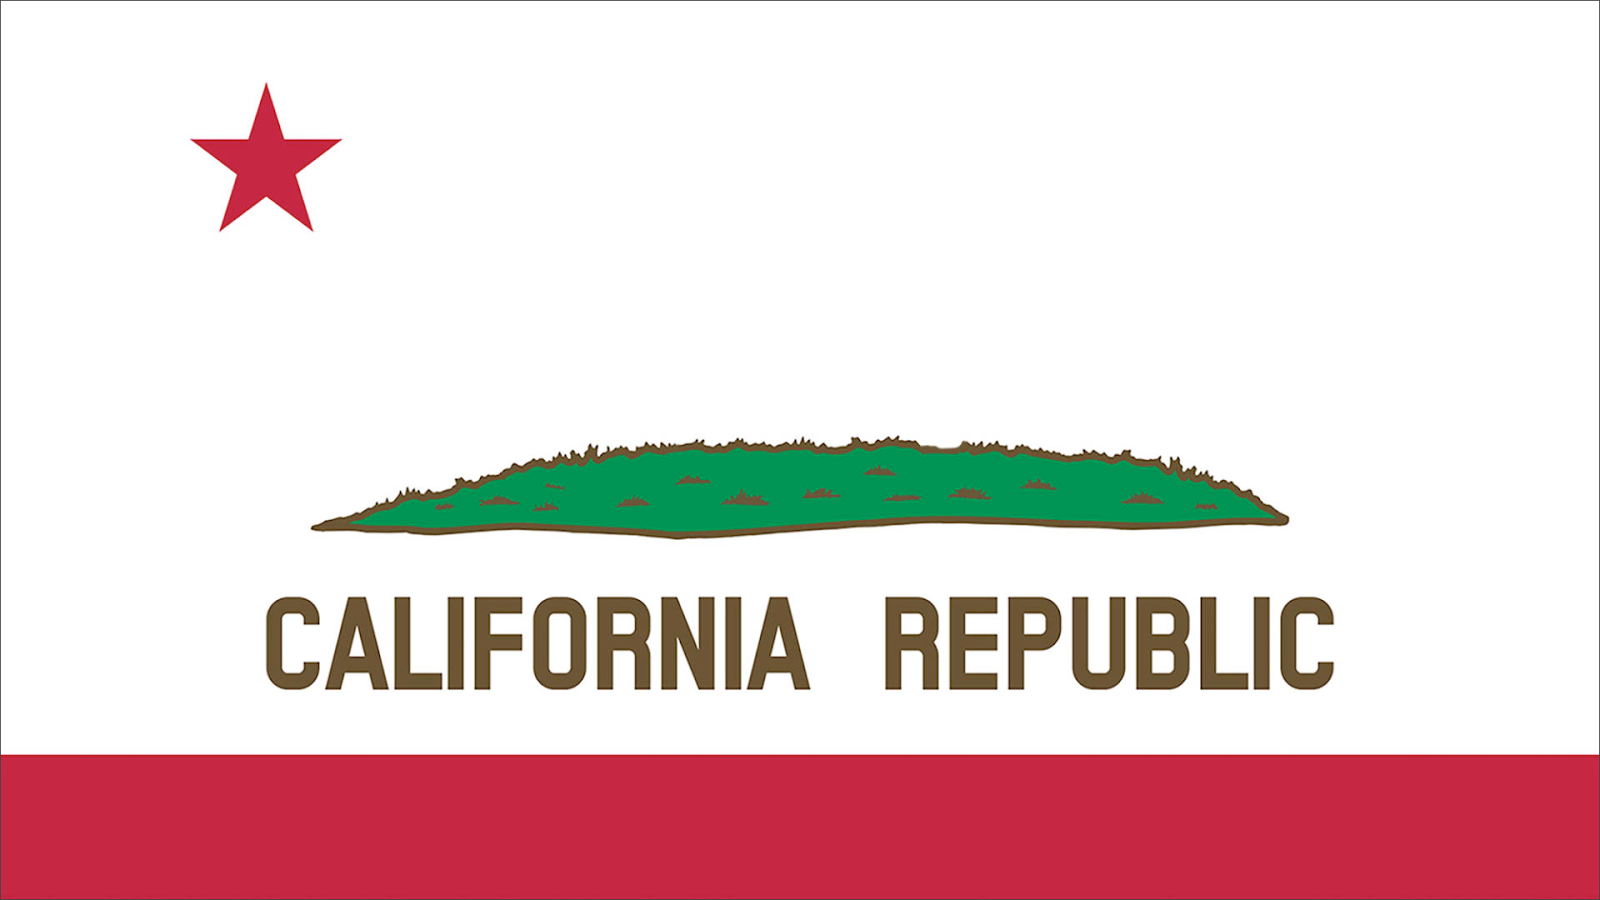 No Grizzly California Flag American Crocodile 2140108 Hd Wallpaper Backgrounds Download